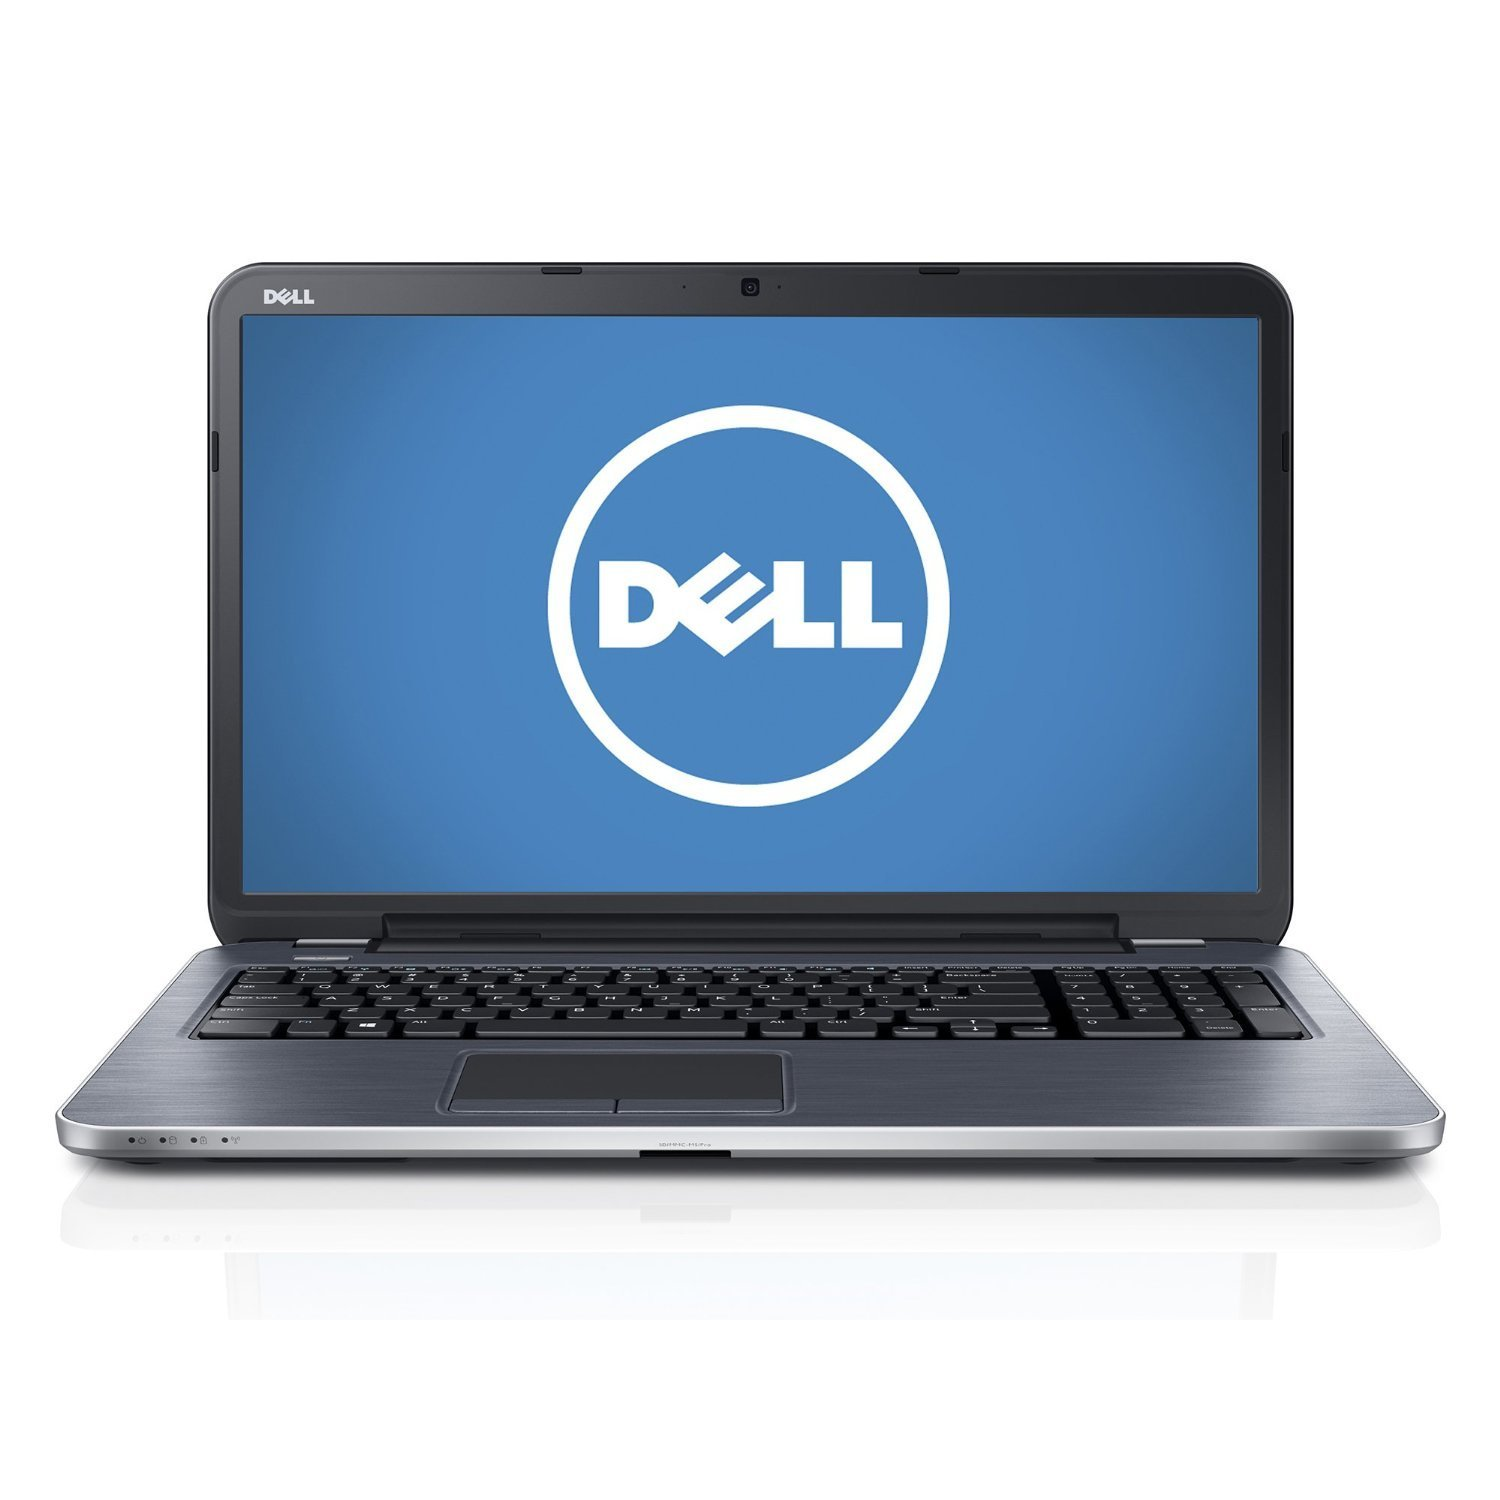 Dell Inspiron 17r I17rm 8355slv 17 3 Inch Laptop Review